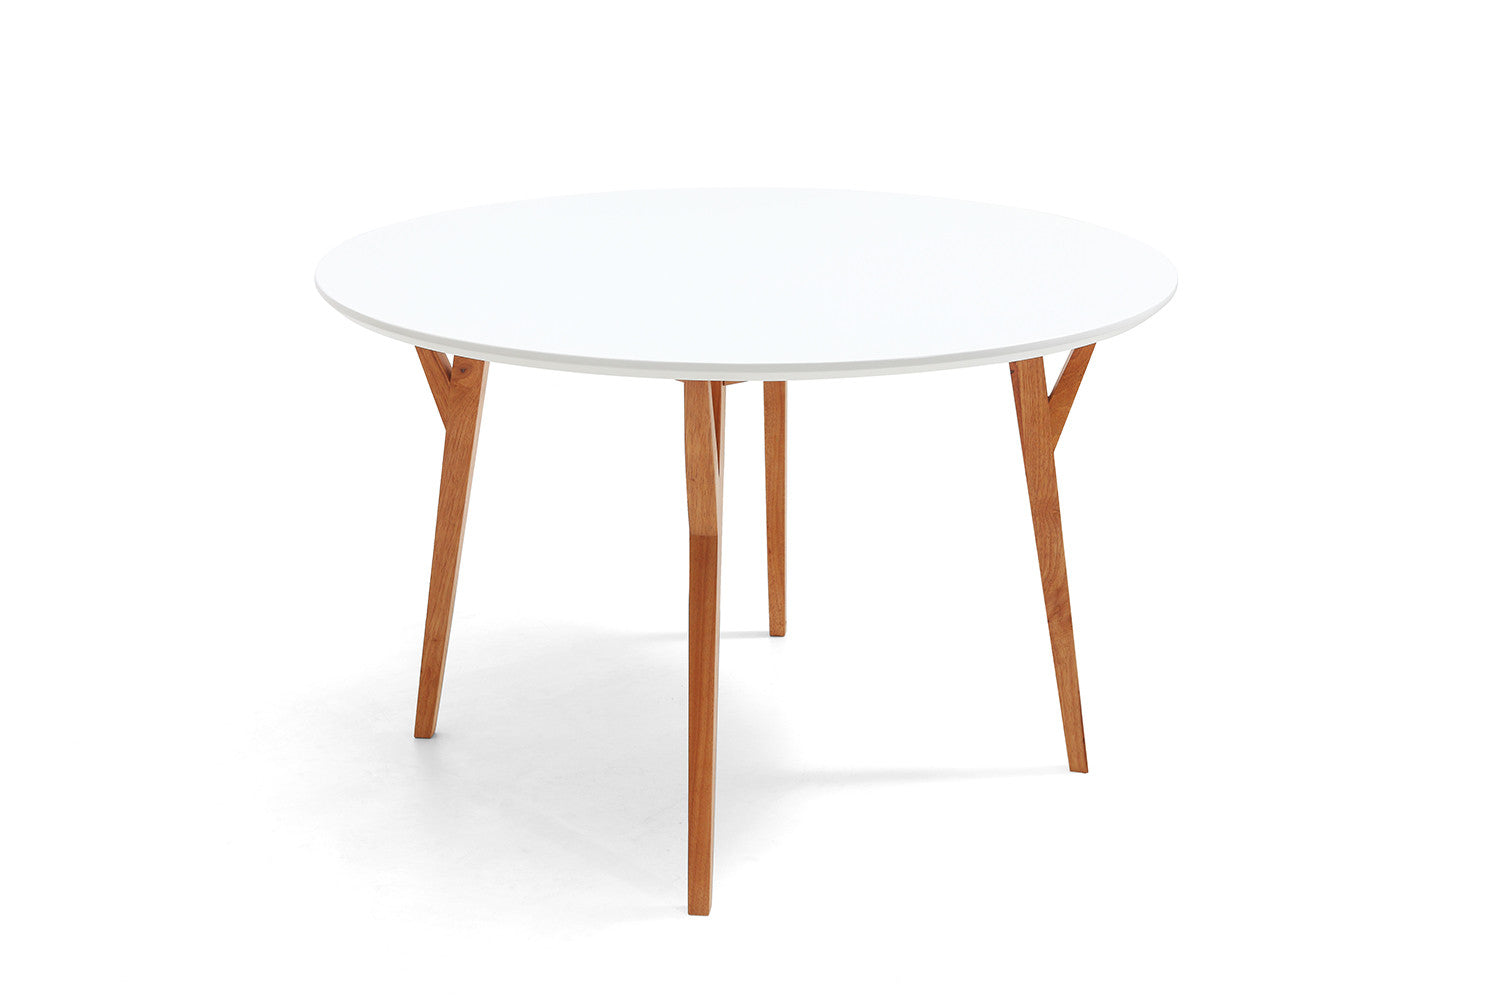 Table de salle manger ronde design scandinave moesa for Table salle a manger rallonge design